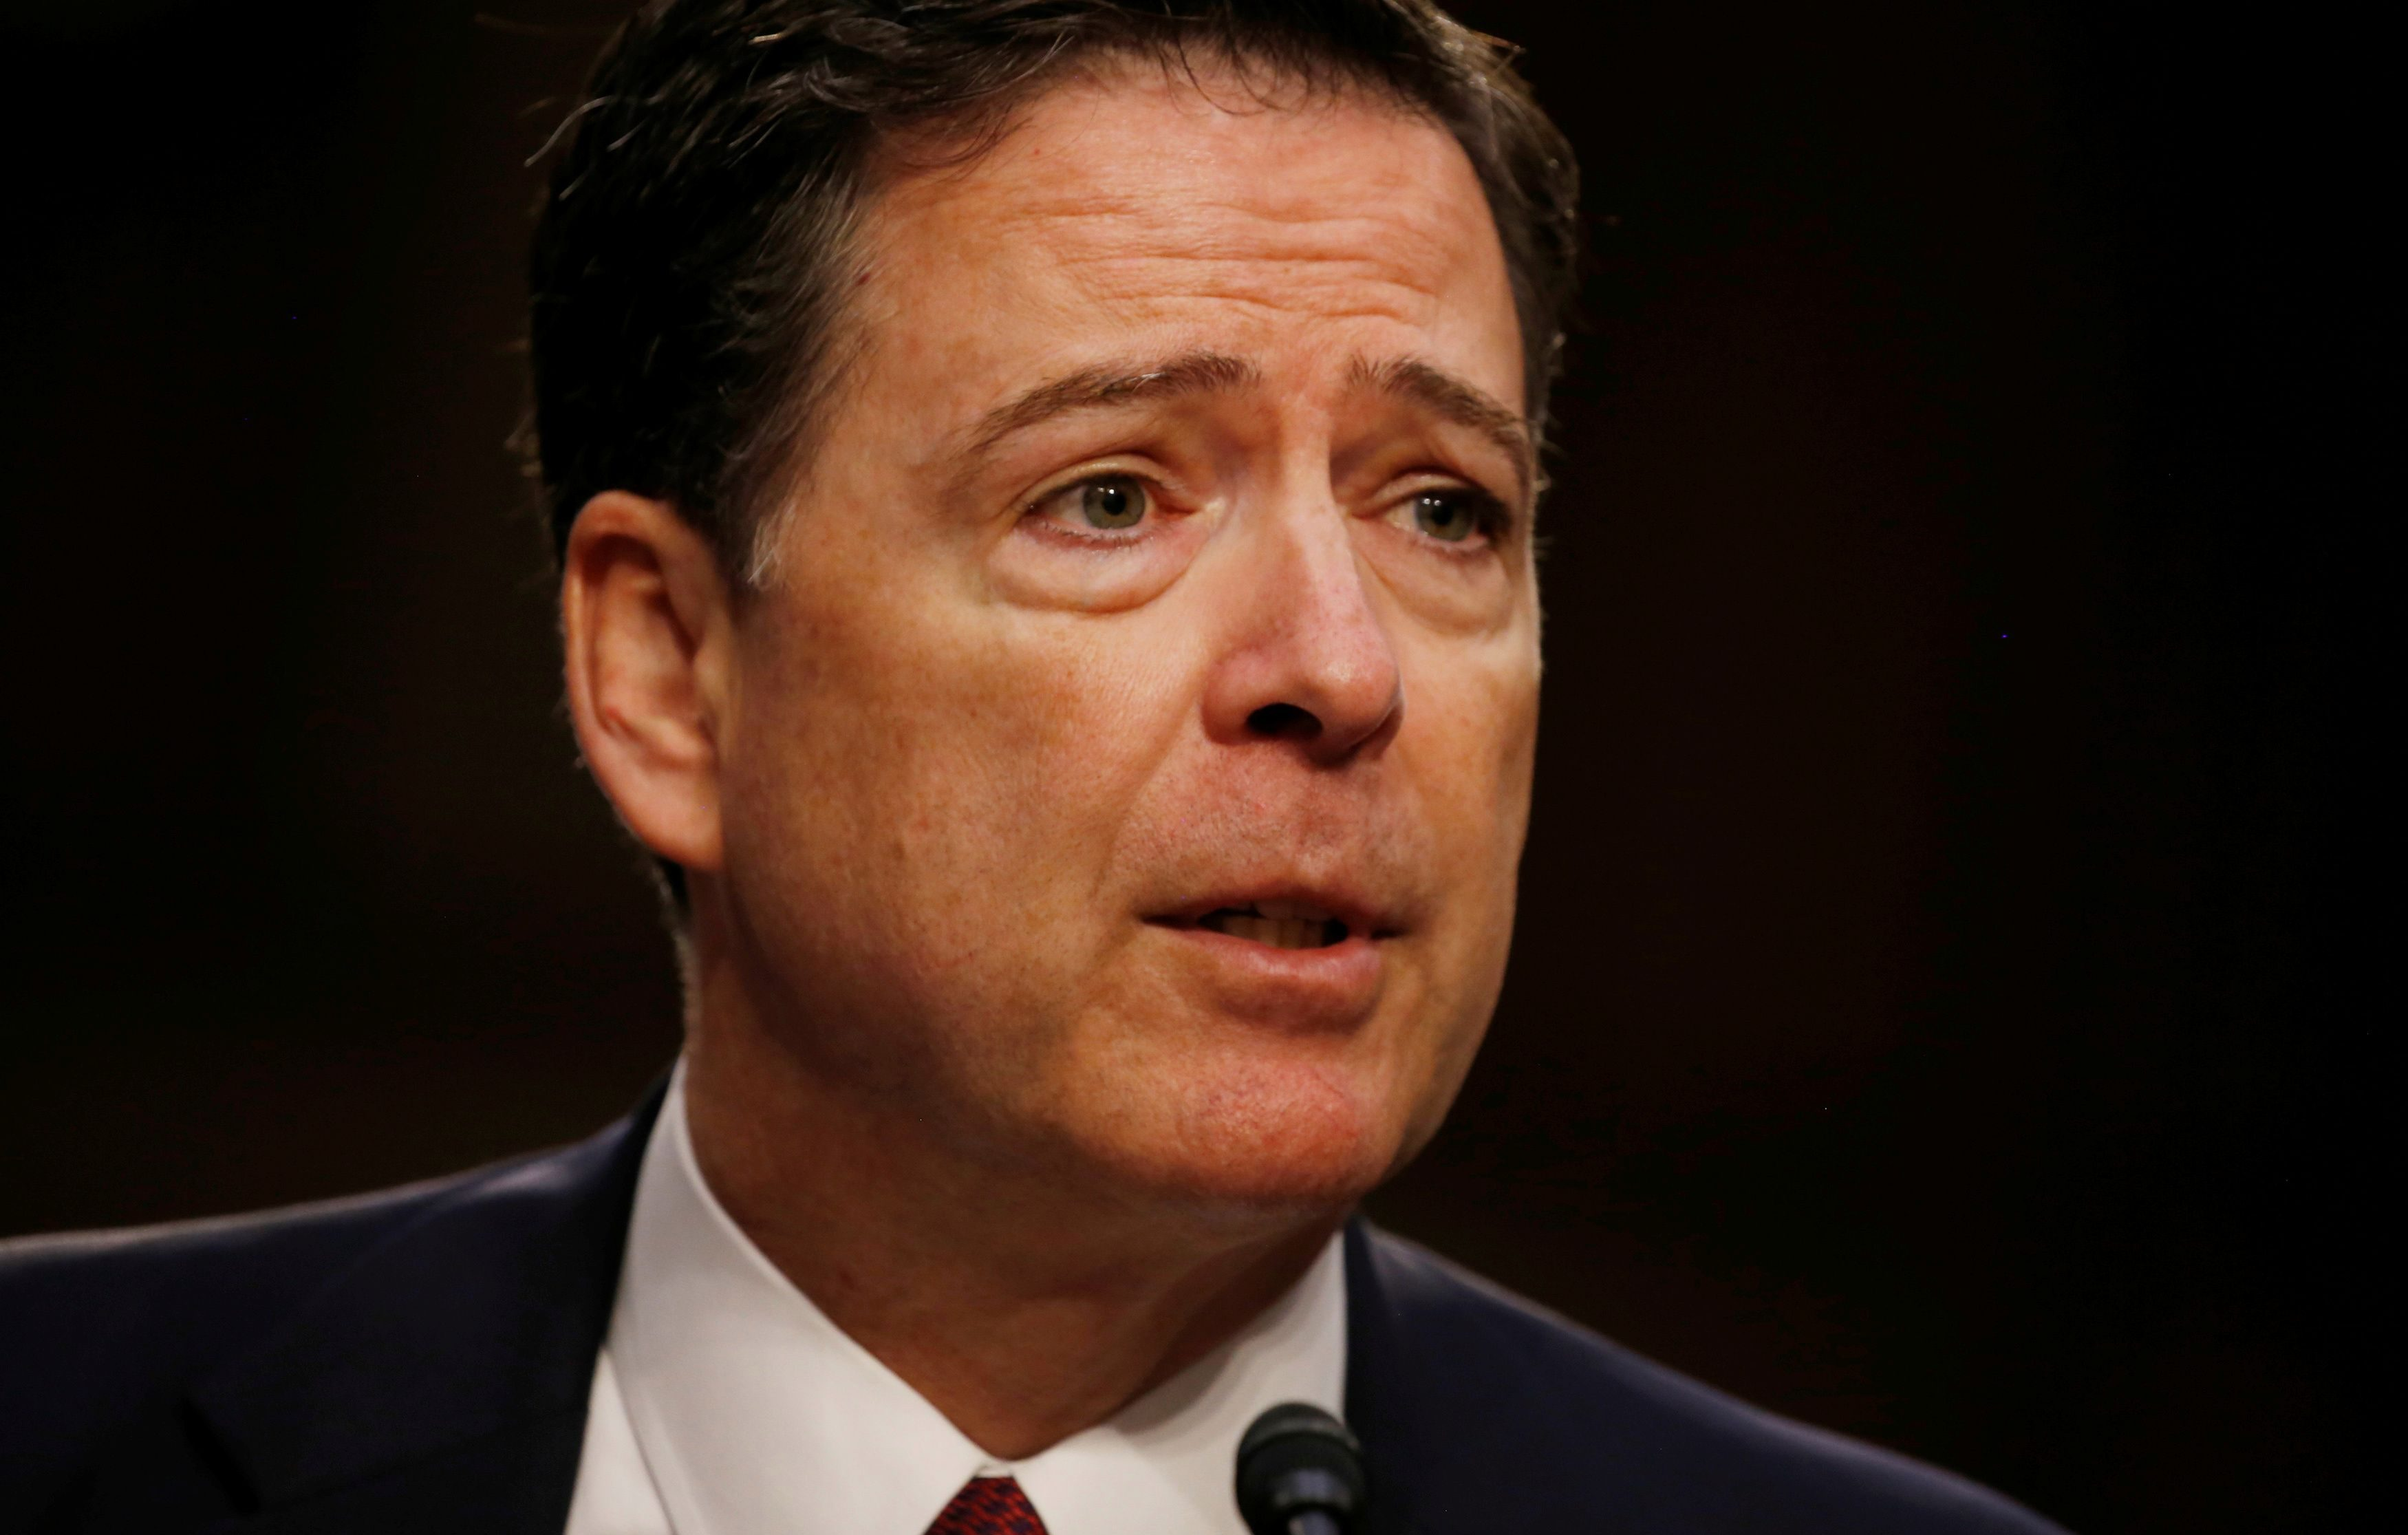 I Wish I'd Left Out Paragraph Describing Trump's Appearance — Comey